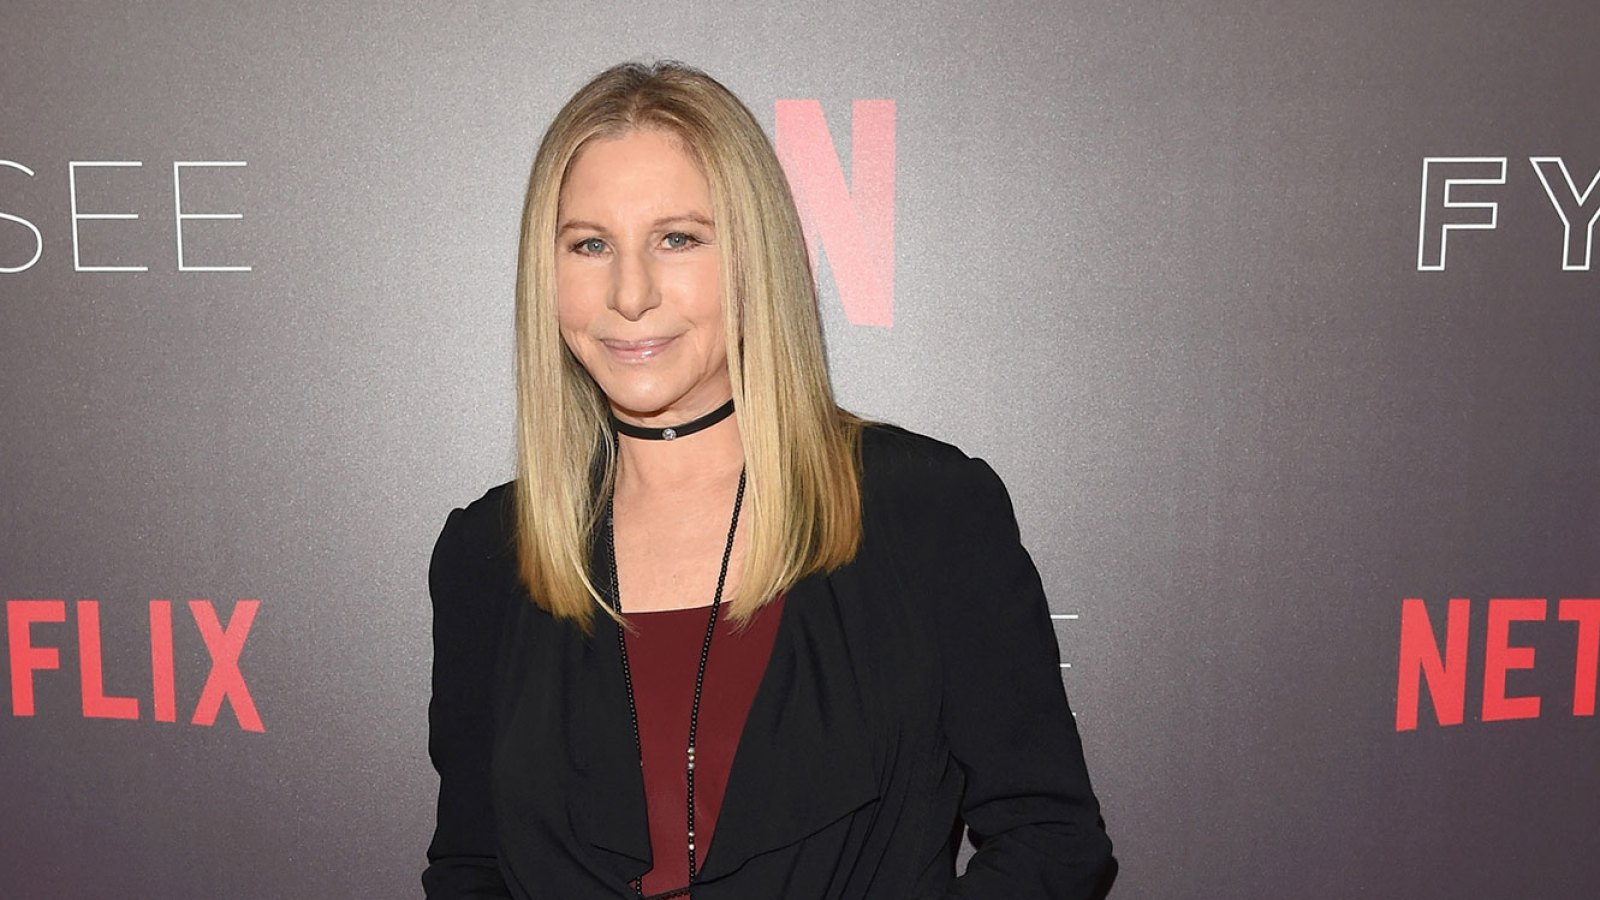 Barbra Streisand Sparks Outrage Over Michael Jackson Comments